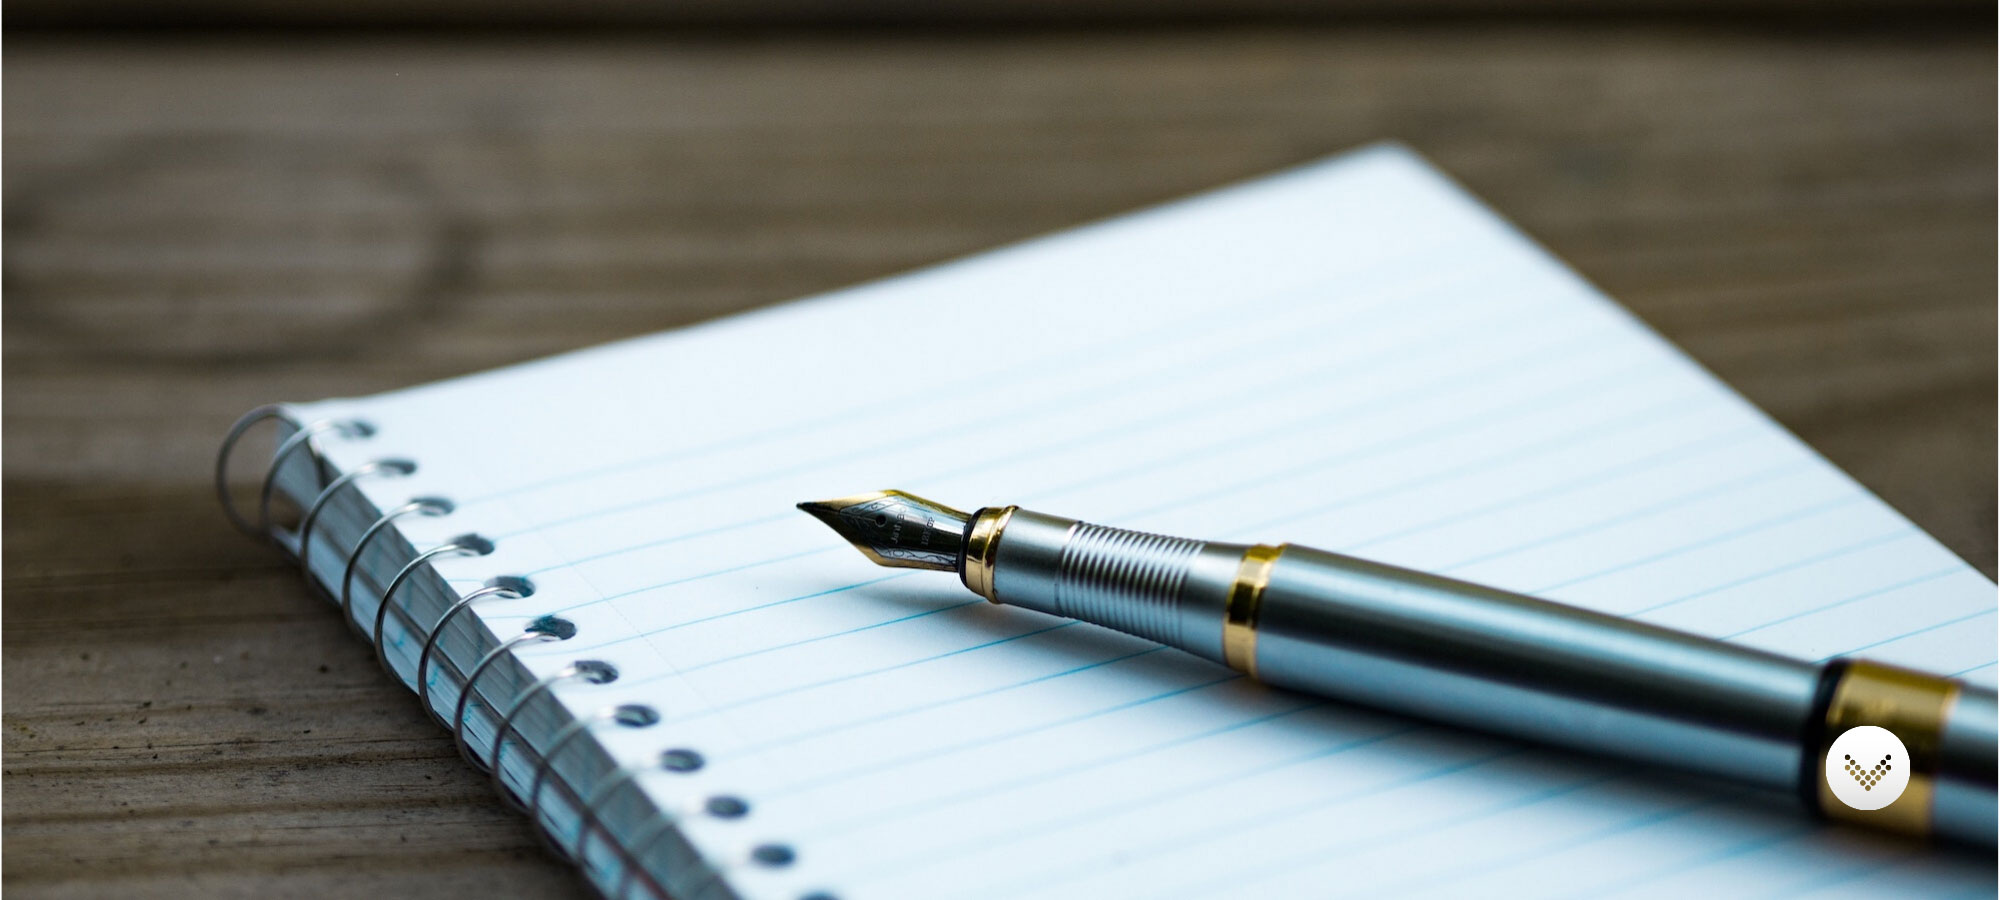 Fancy pen and note pad of paper situated on a wooden desk.